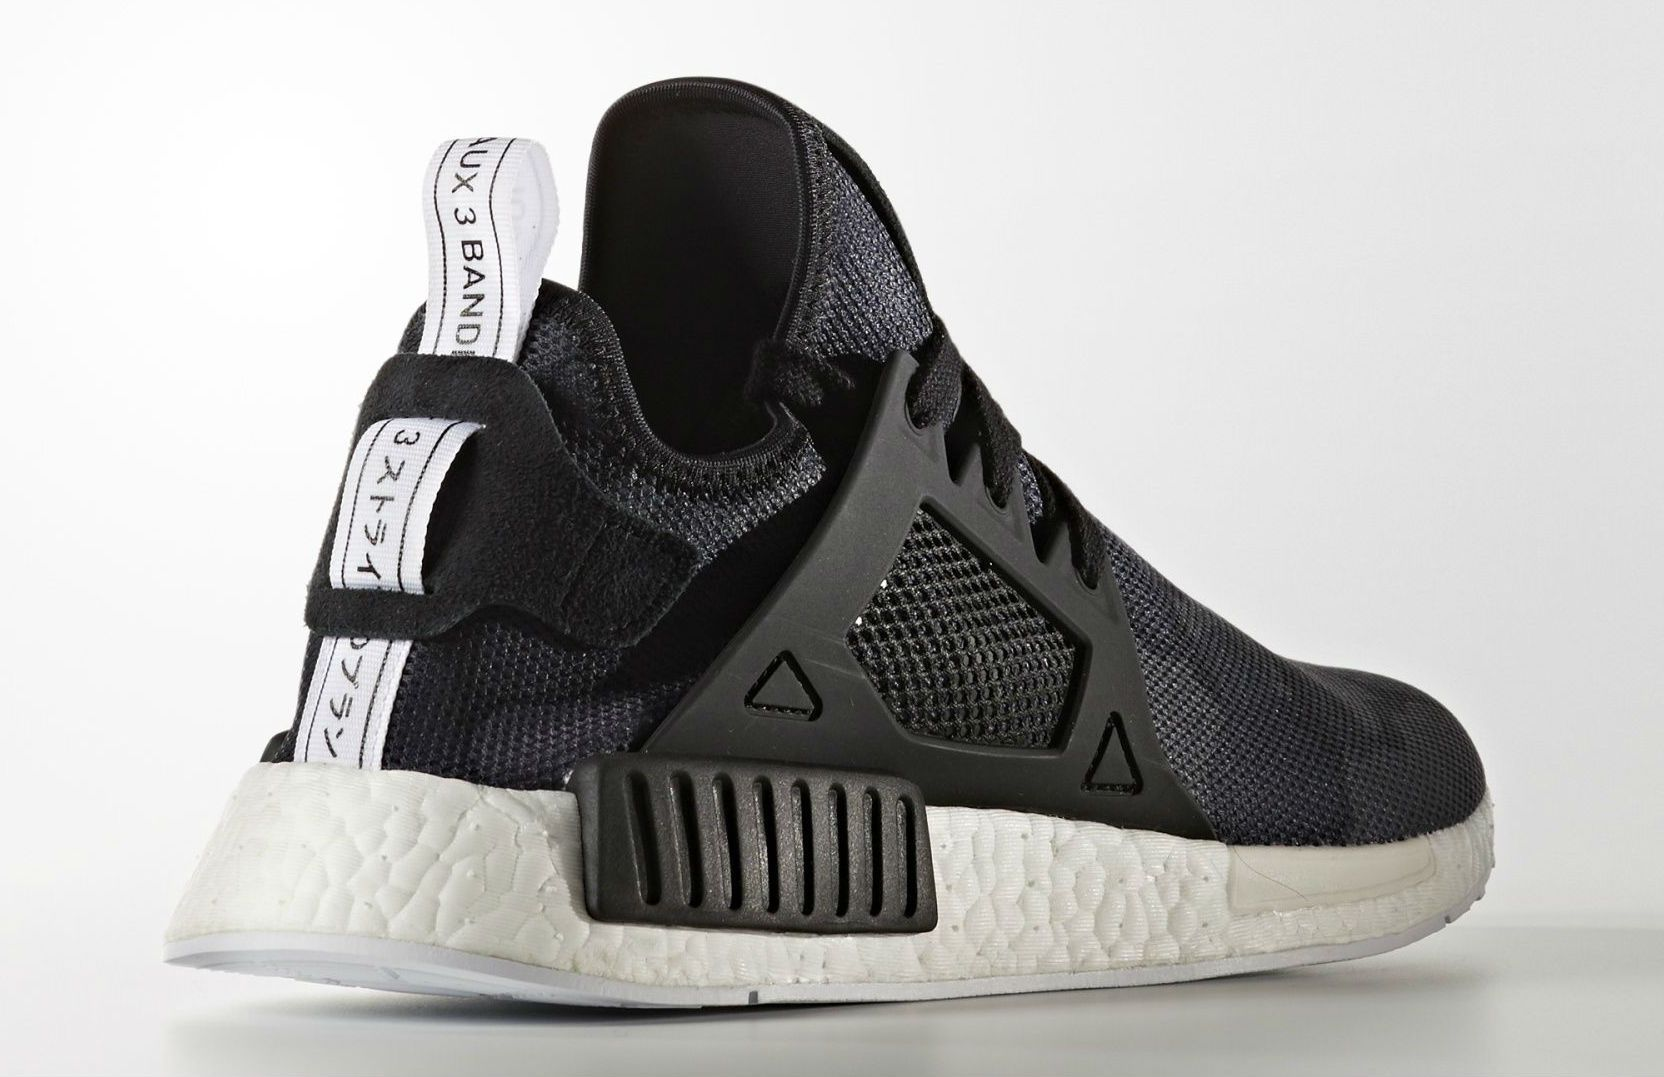 adidas NMD XR1 Black Camo Heel BA7231 | Sneakers in 2019